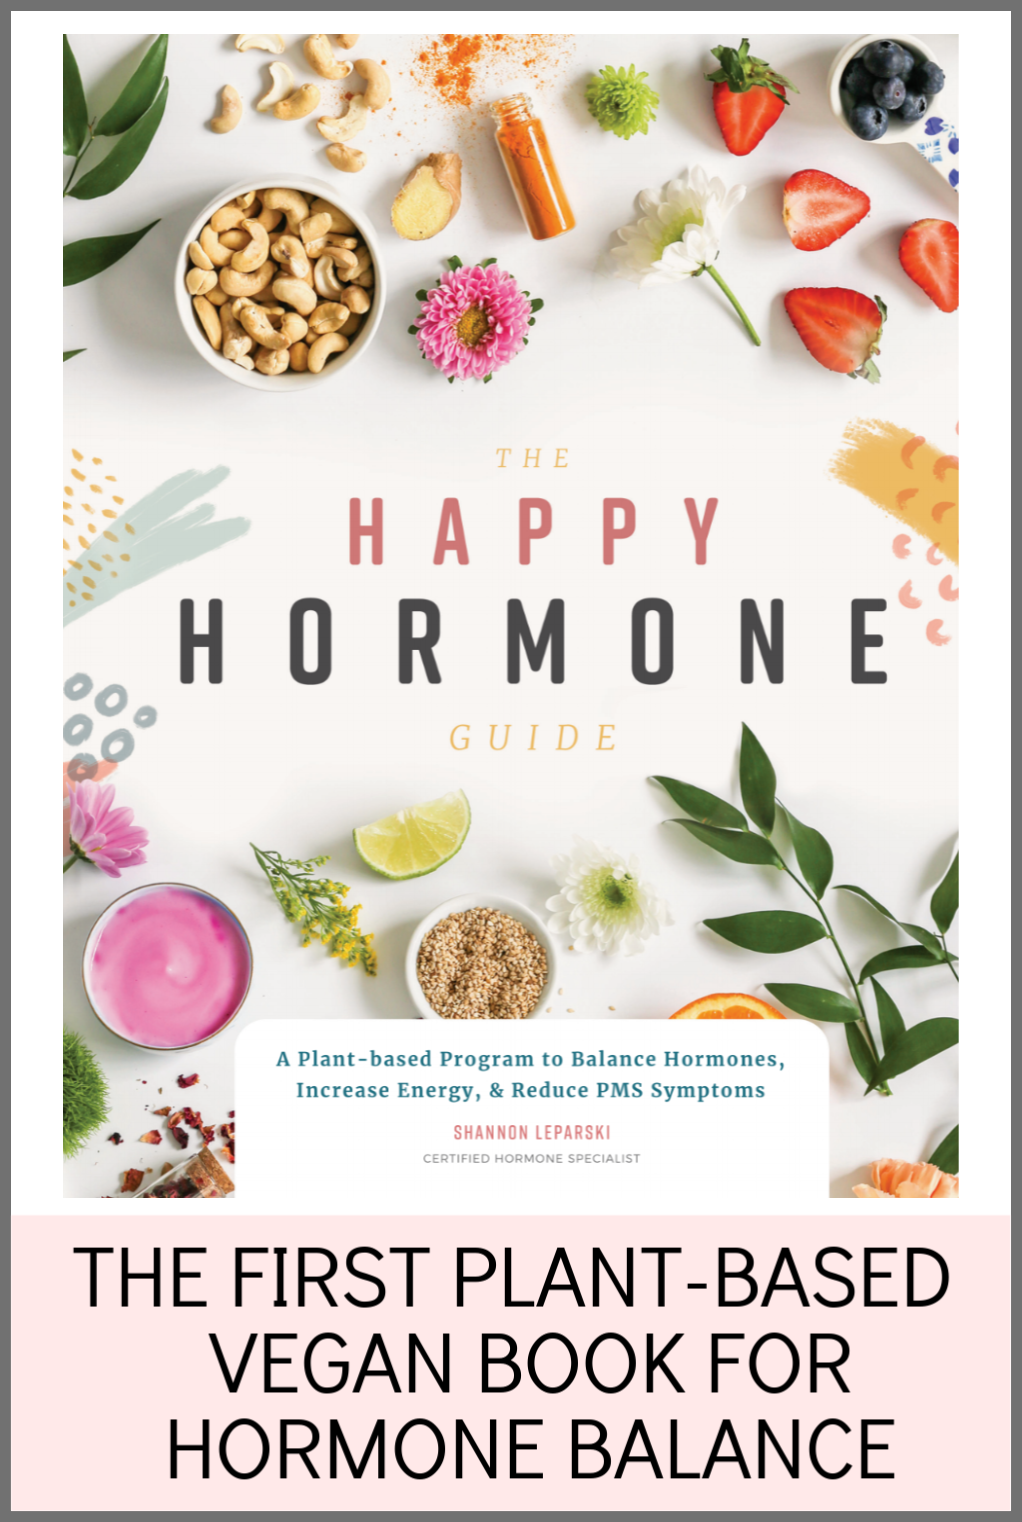 The Happy Hormone Guide